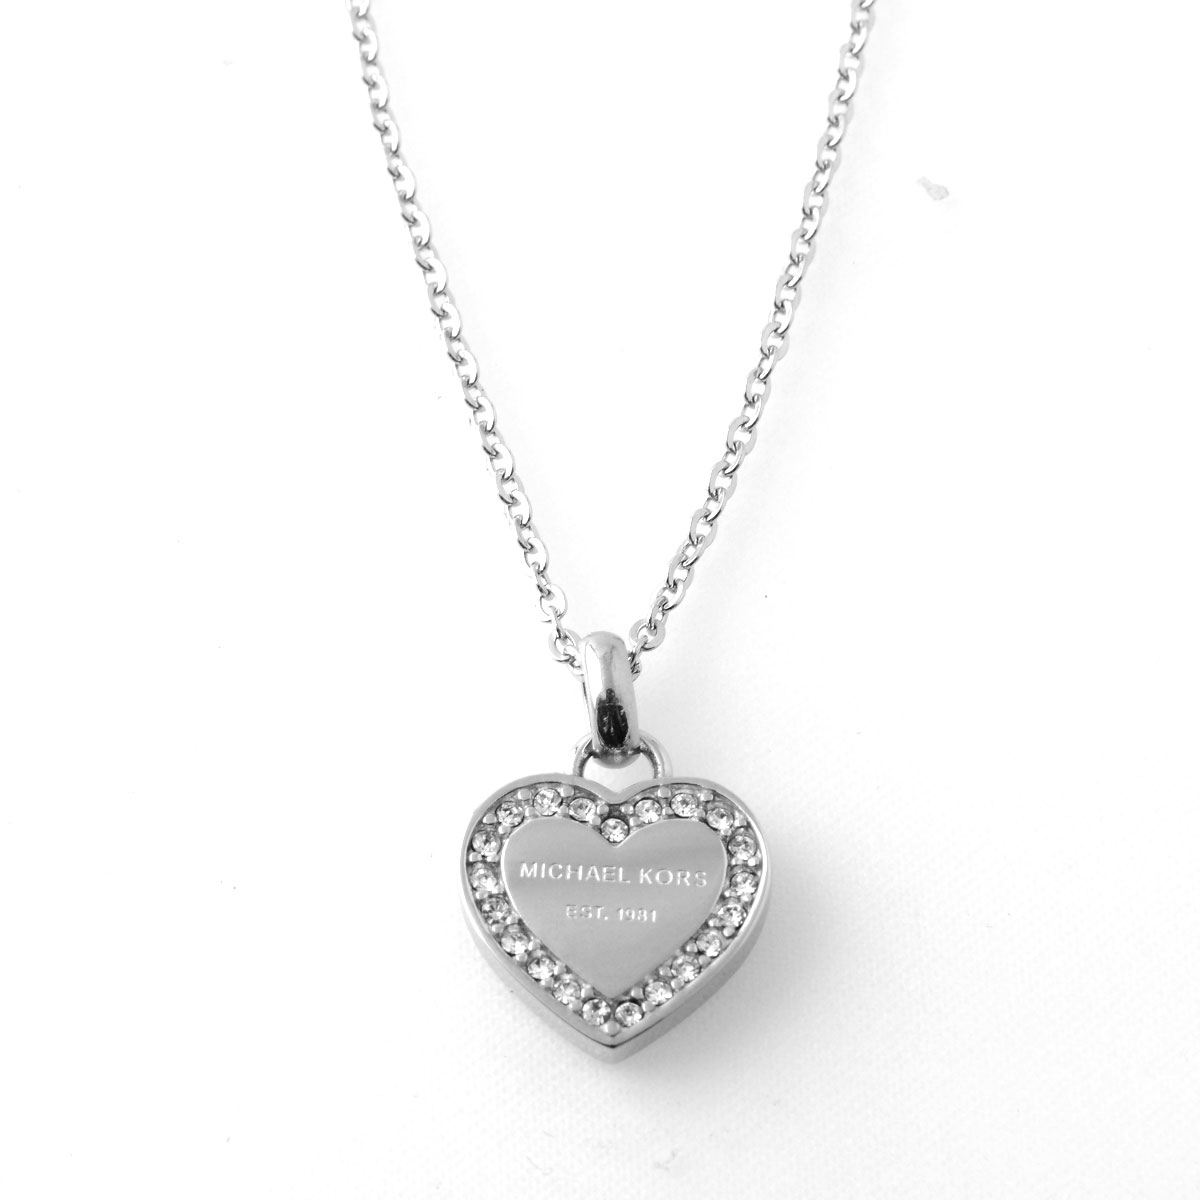 Aaa net shop rakuten global market michael kors michael kors michael kors michael kors pave heart charm necklace pendant pave silver tone heart charm mozeypictures Image collections